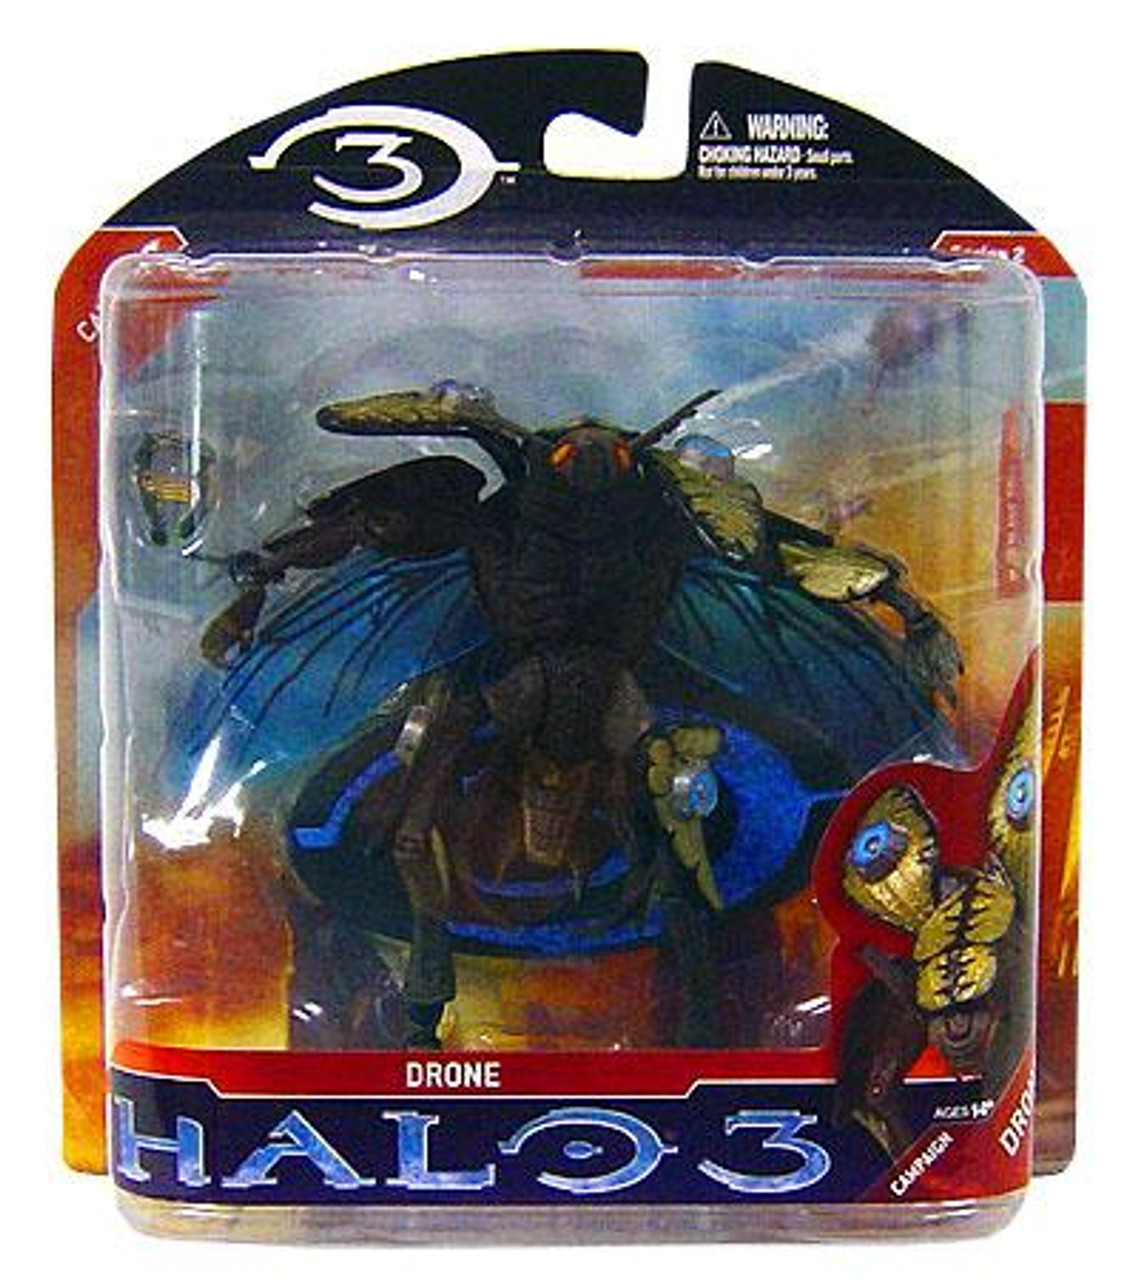 McFarlane Toys Halo 3 Series 2 Drone Action Figure